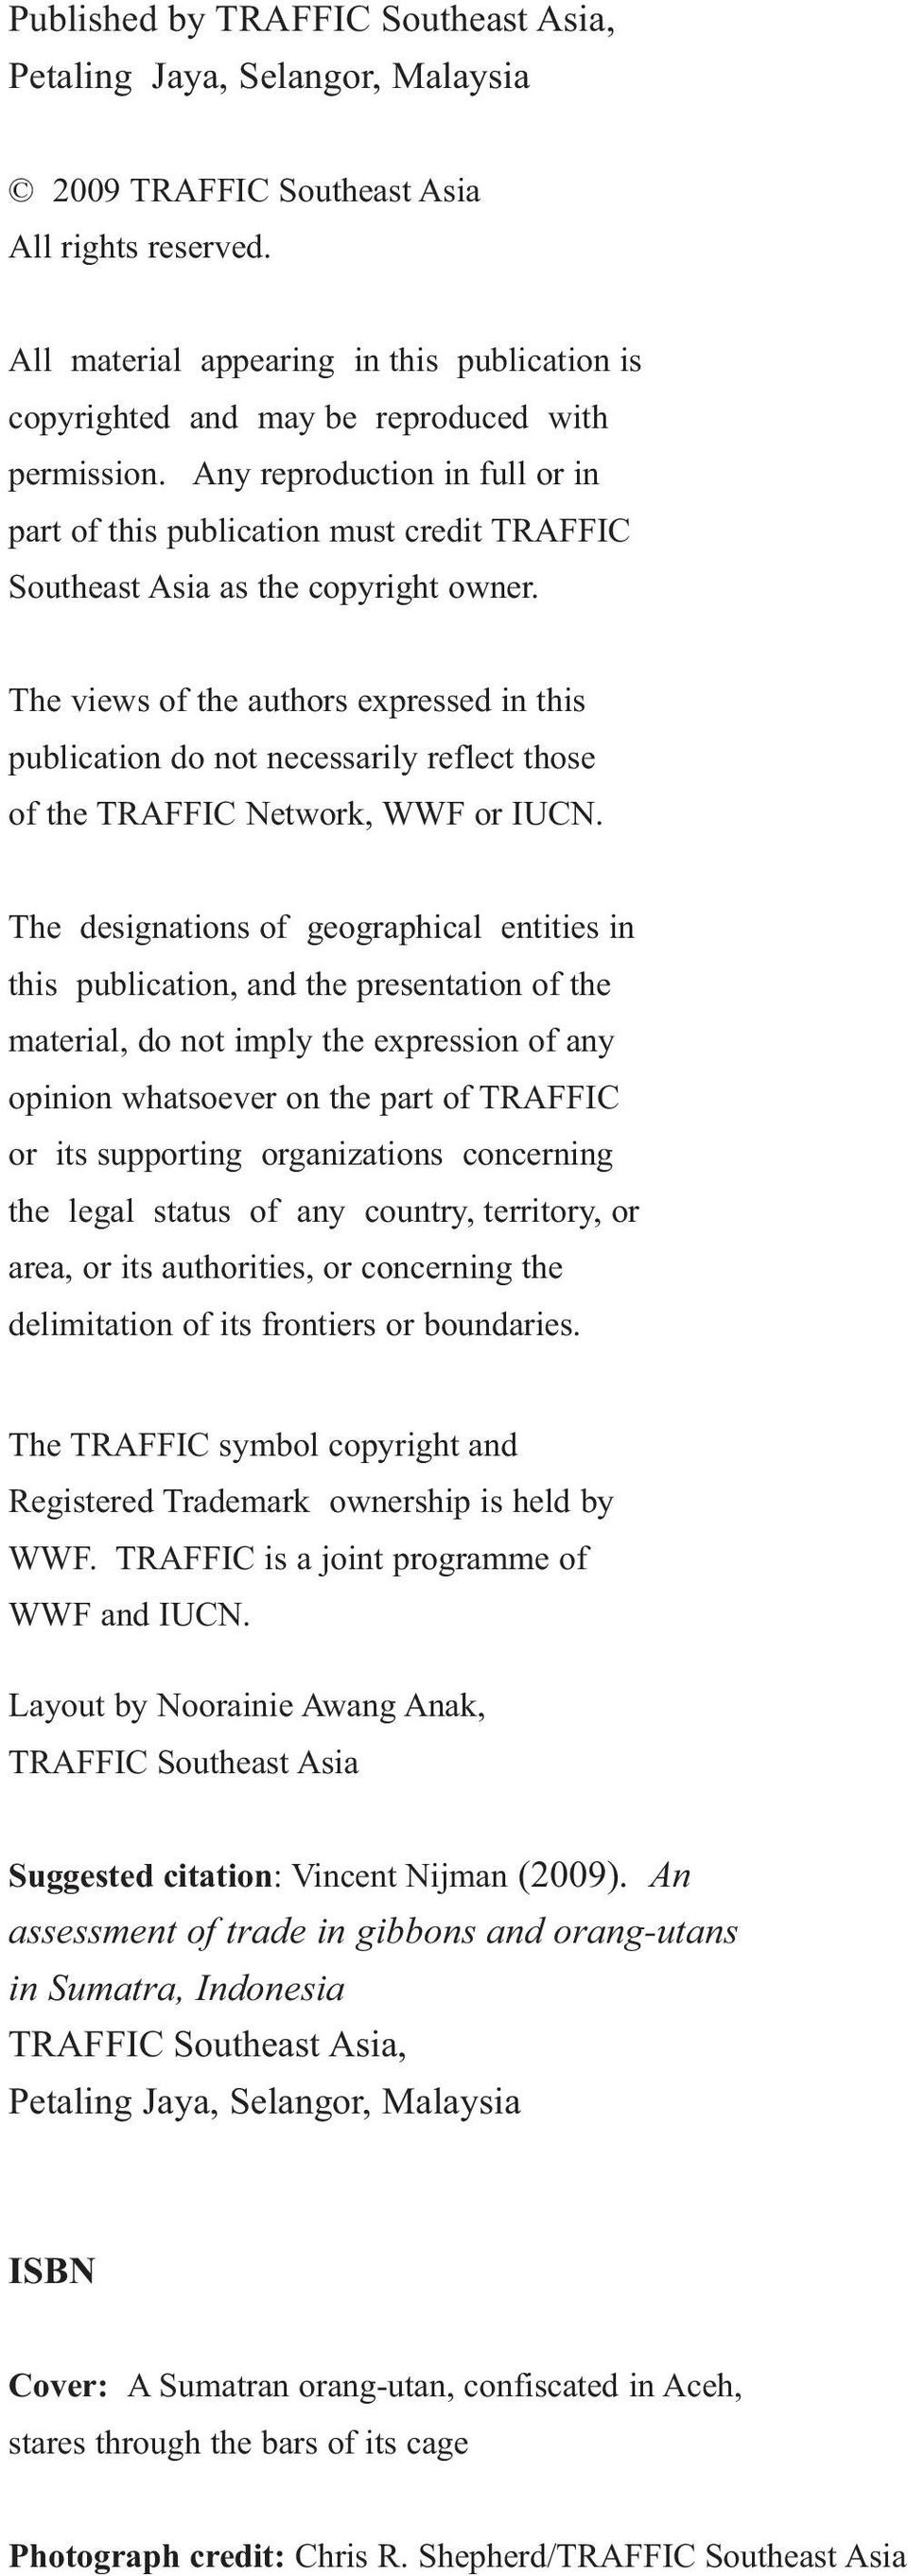 Any reproduction in full or in part of this publication must credit TRAFFIC Southeast Asia as the copyright owner.